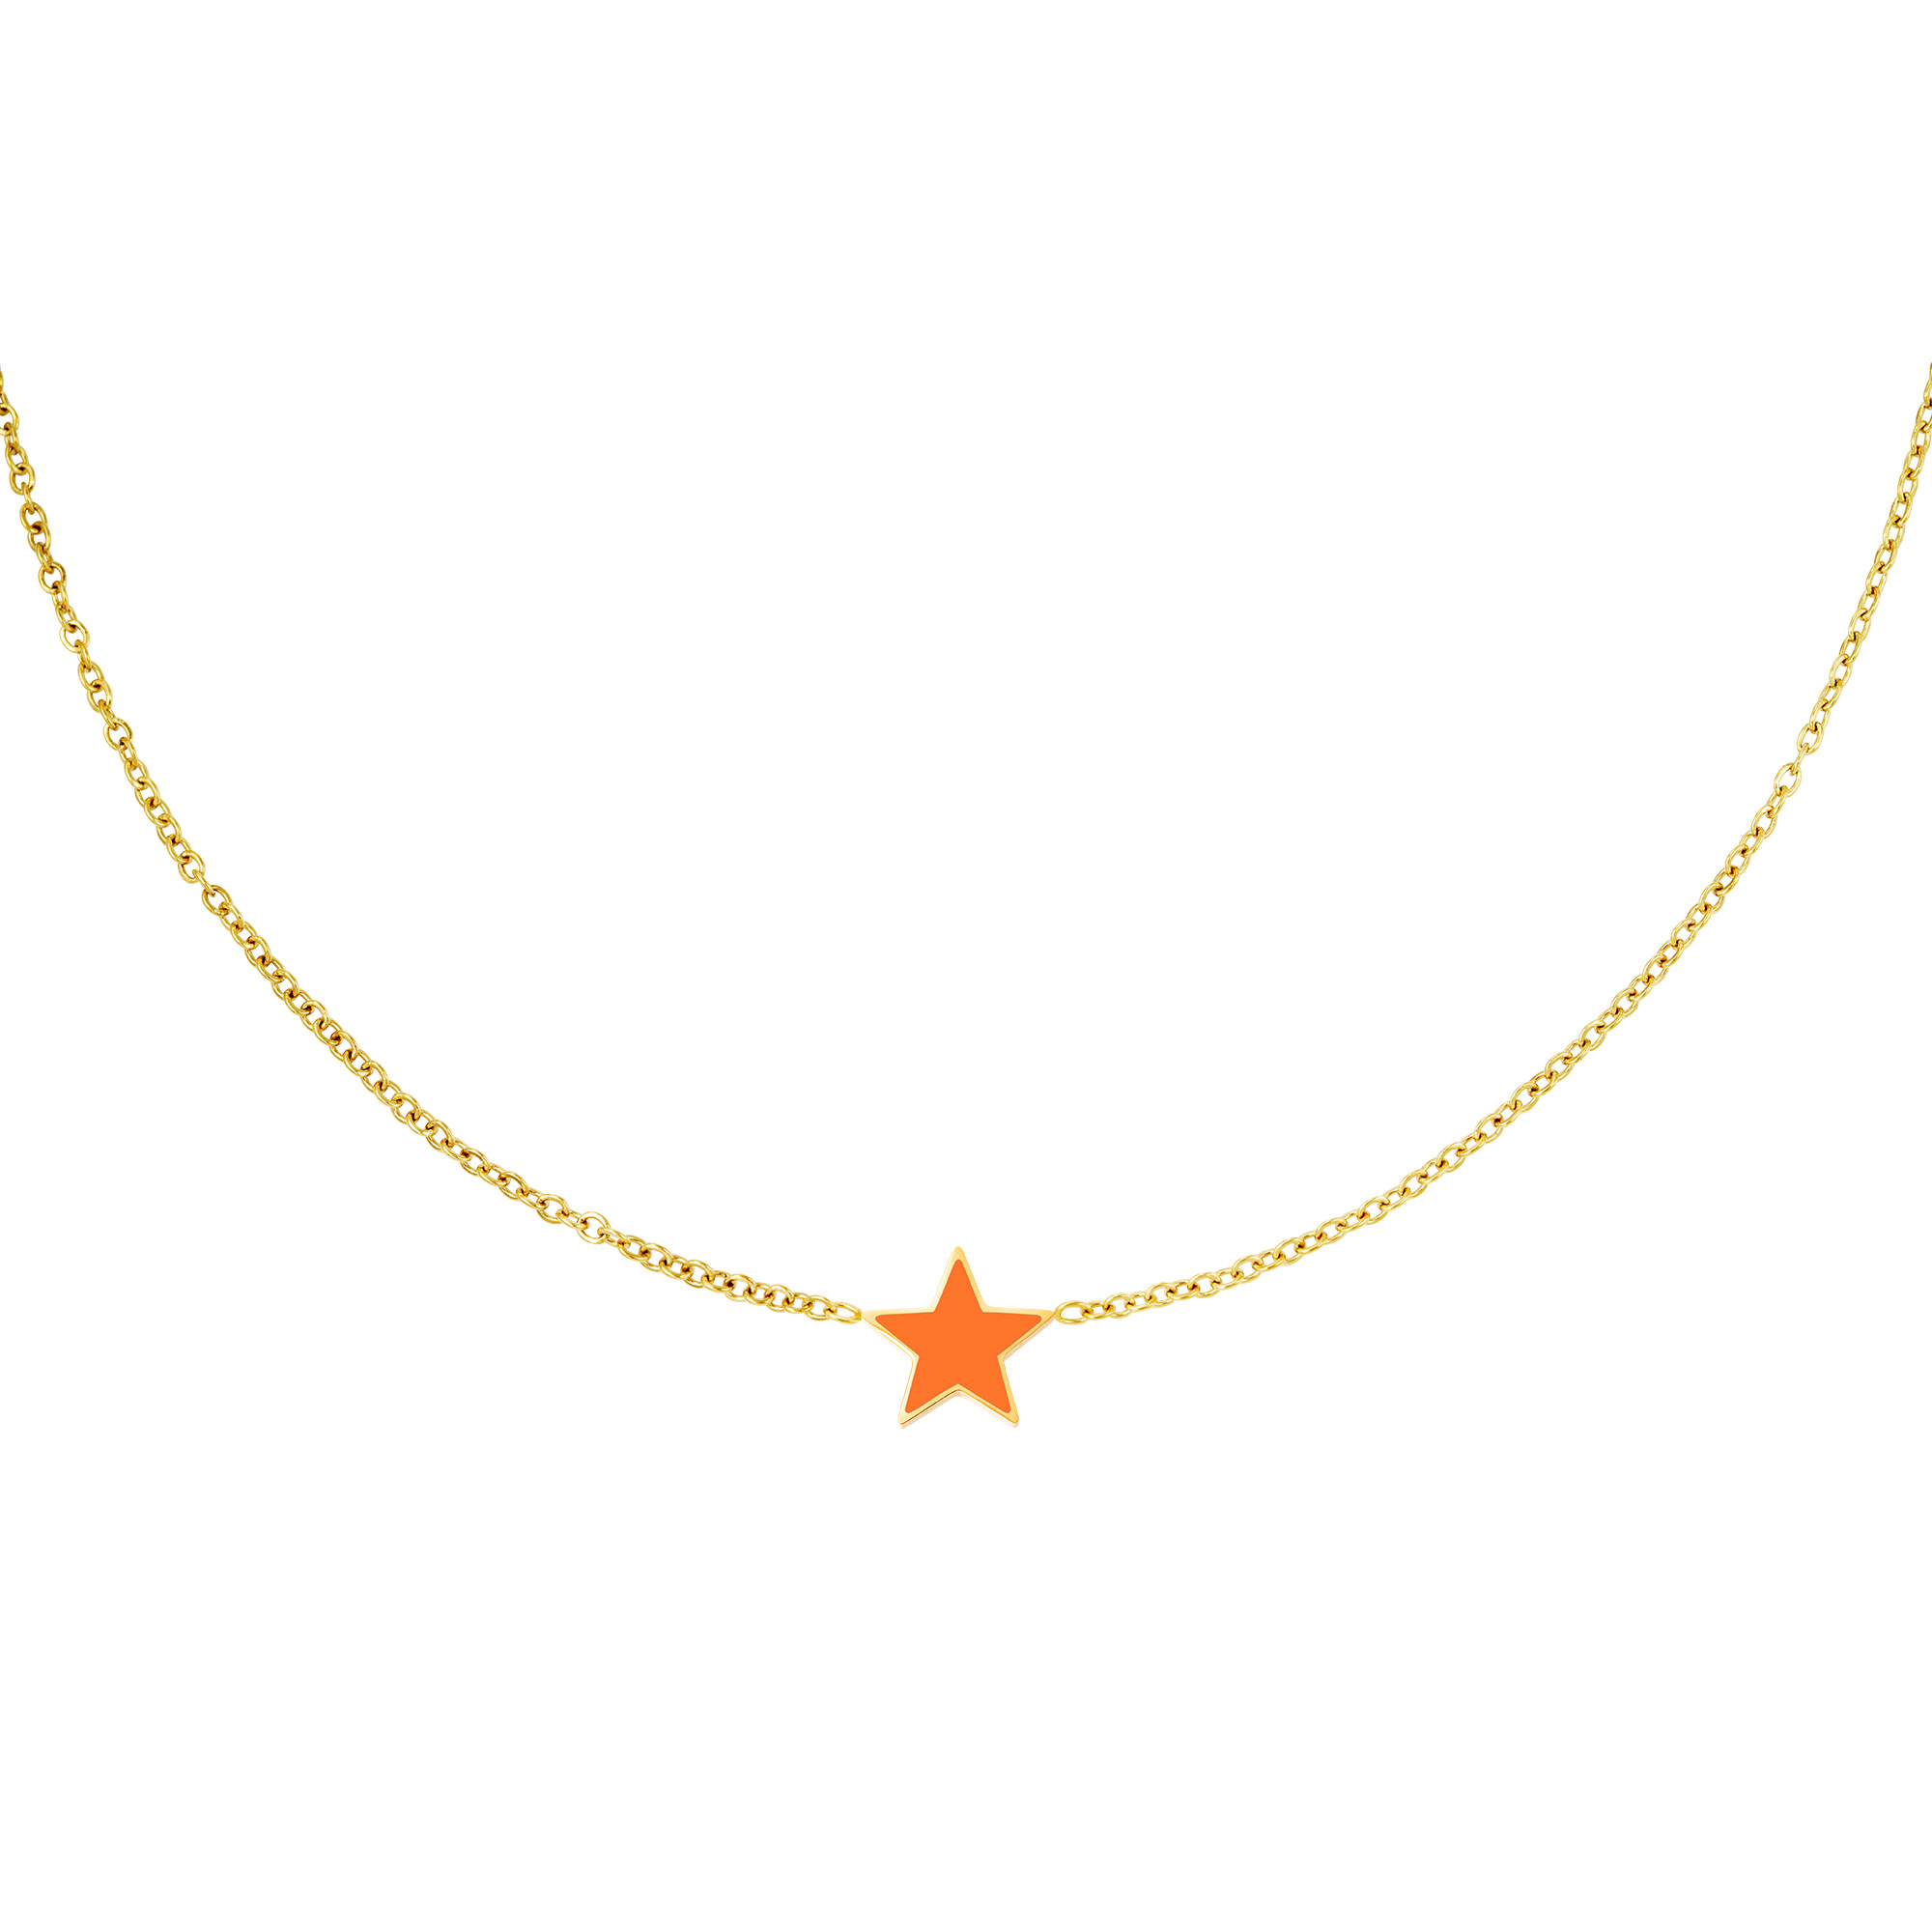 With love Necklace star gold - orange